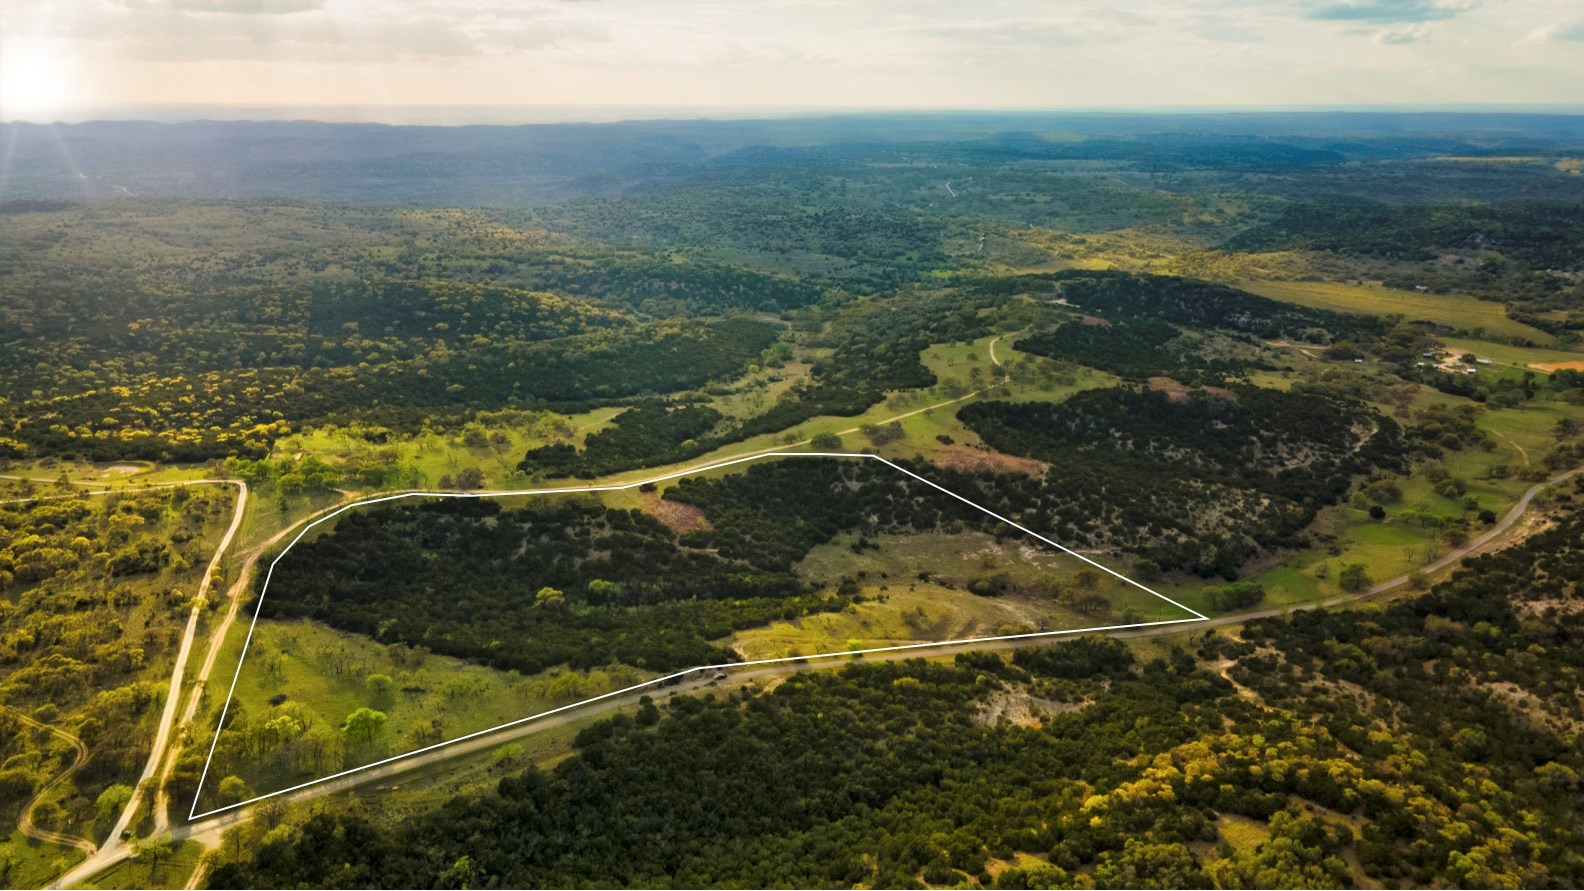 Land For Sale in Kendall County Texas with Amazing Views